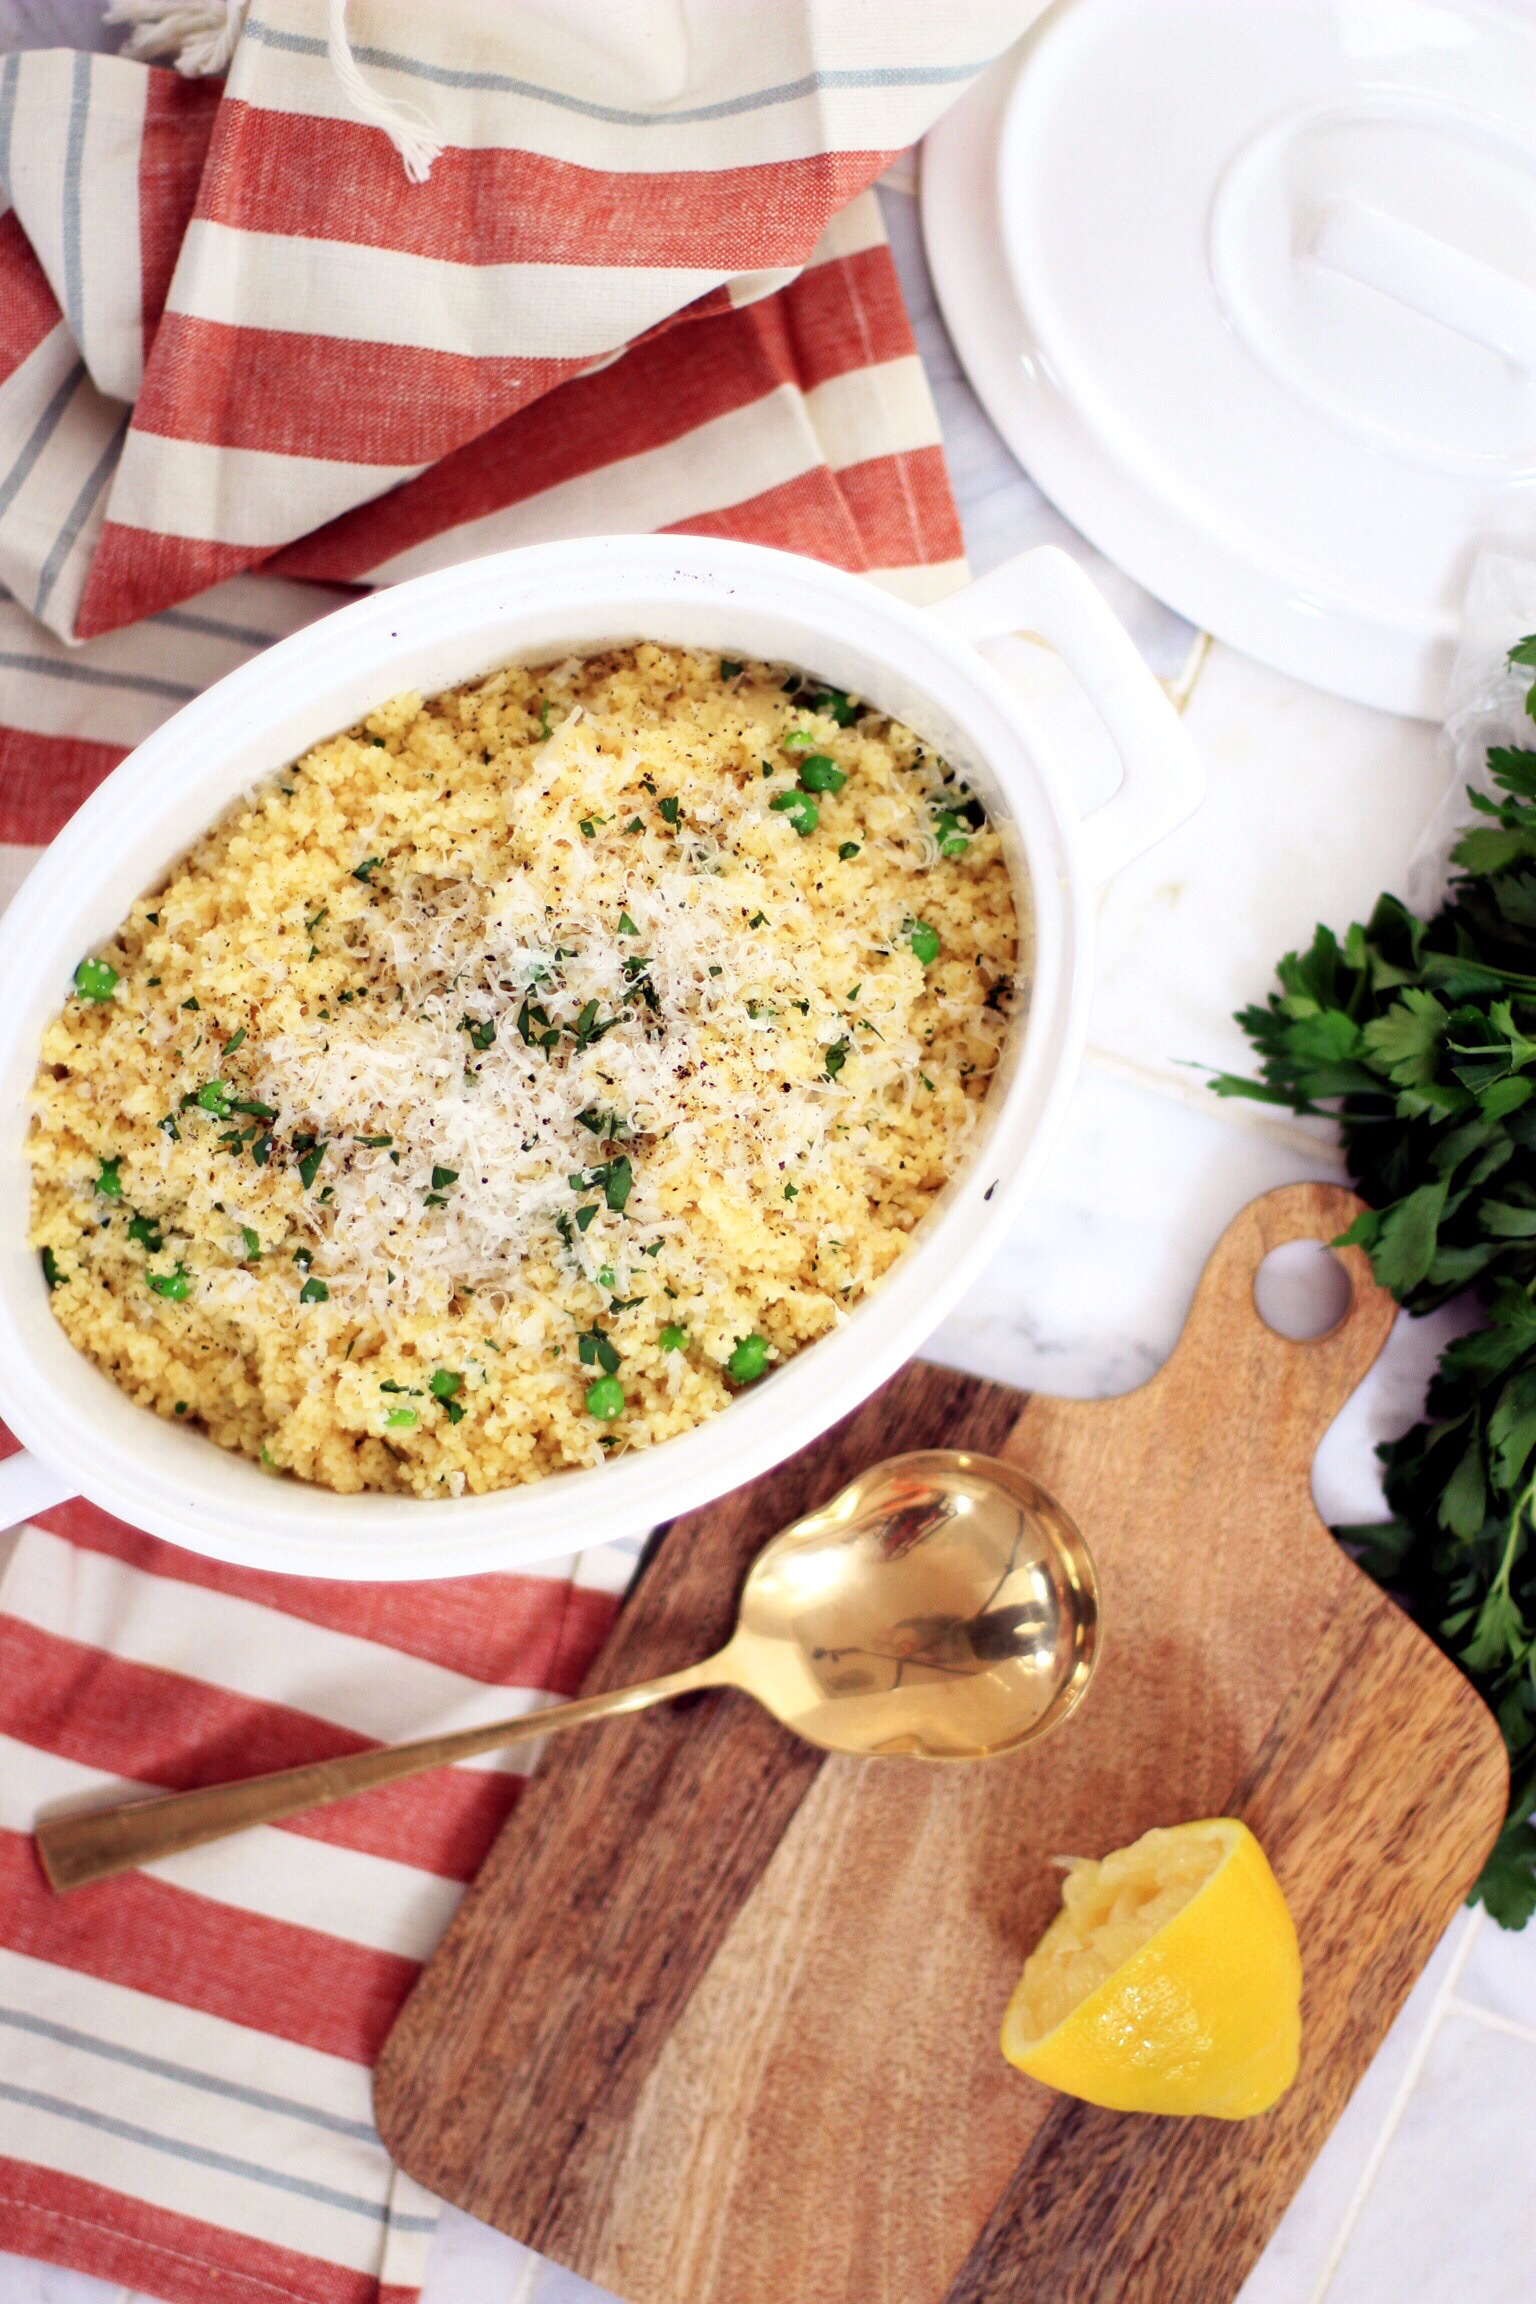 Warm lemon and Parmesan couscous